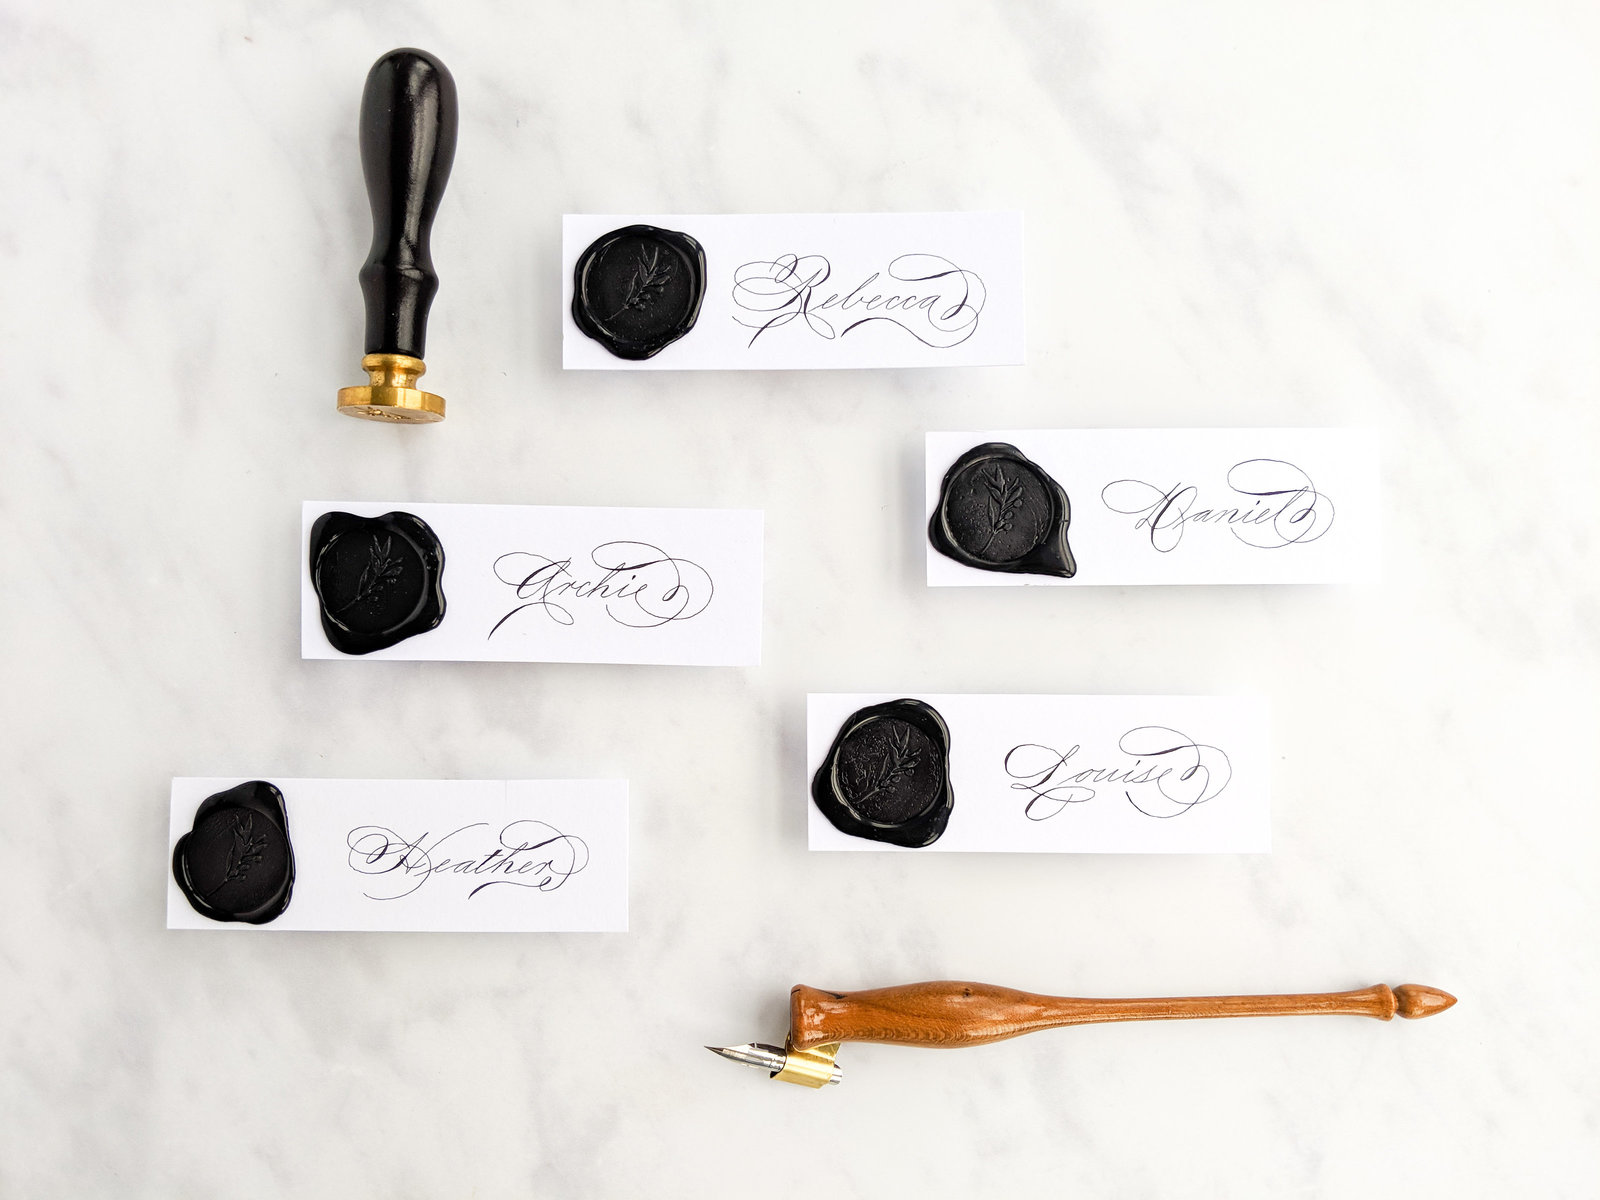 Black wax seal place cards with calligraphy for wedding